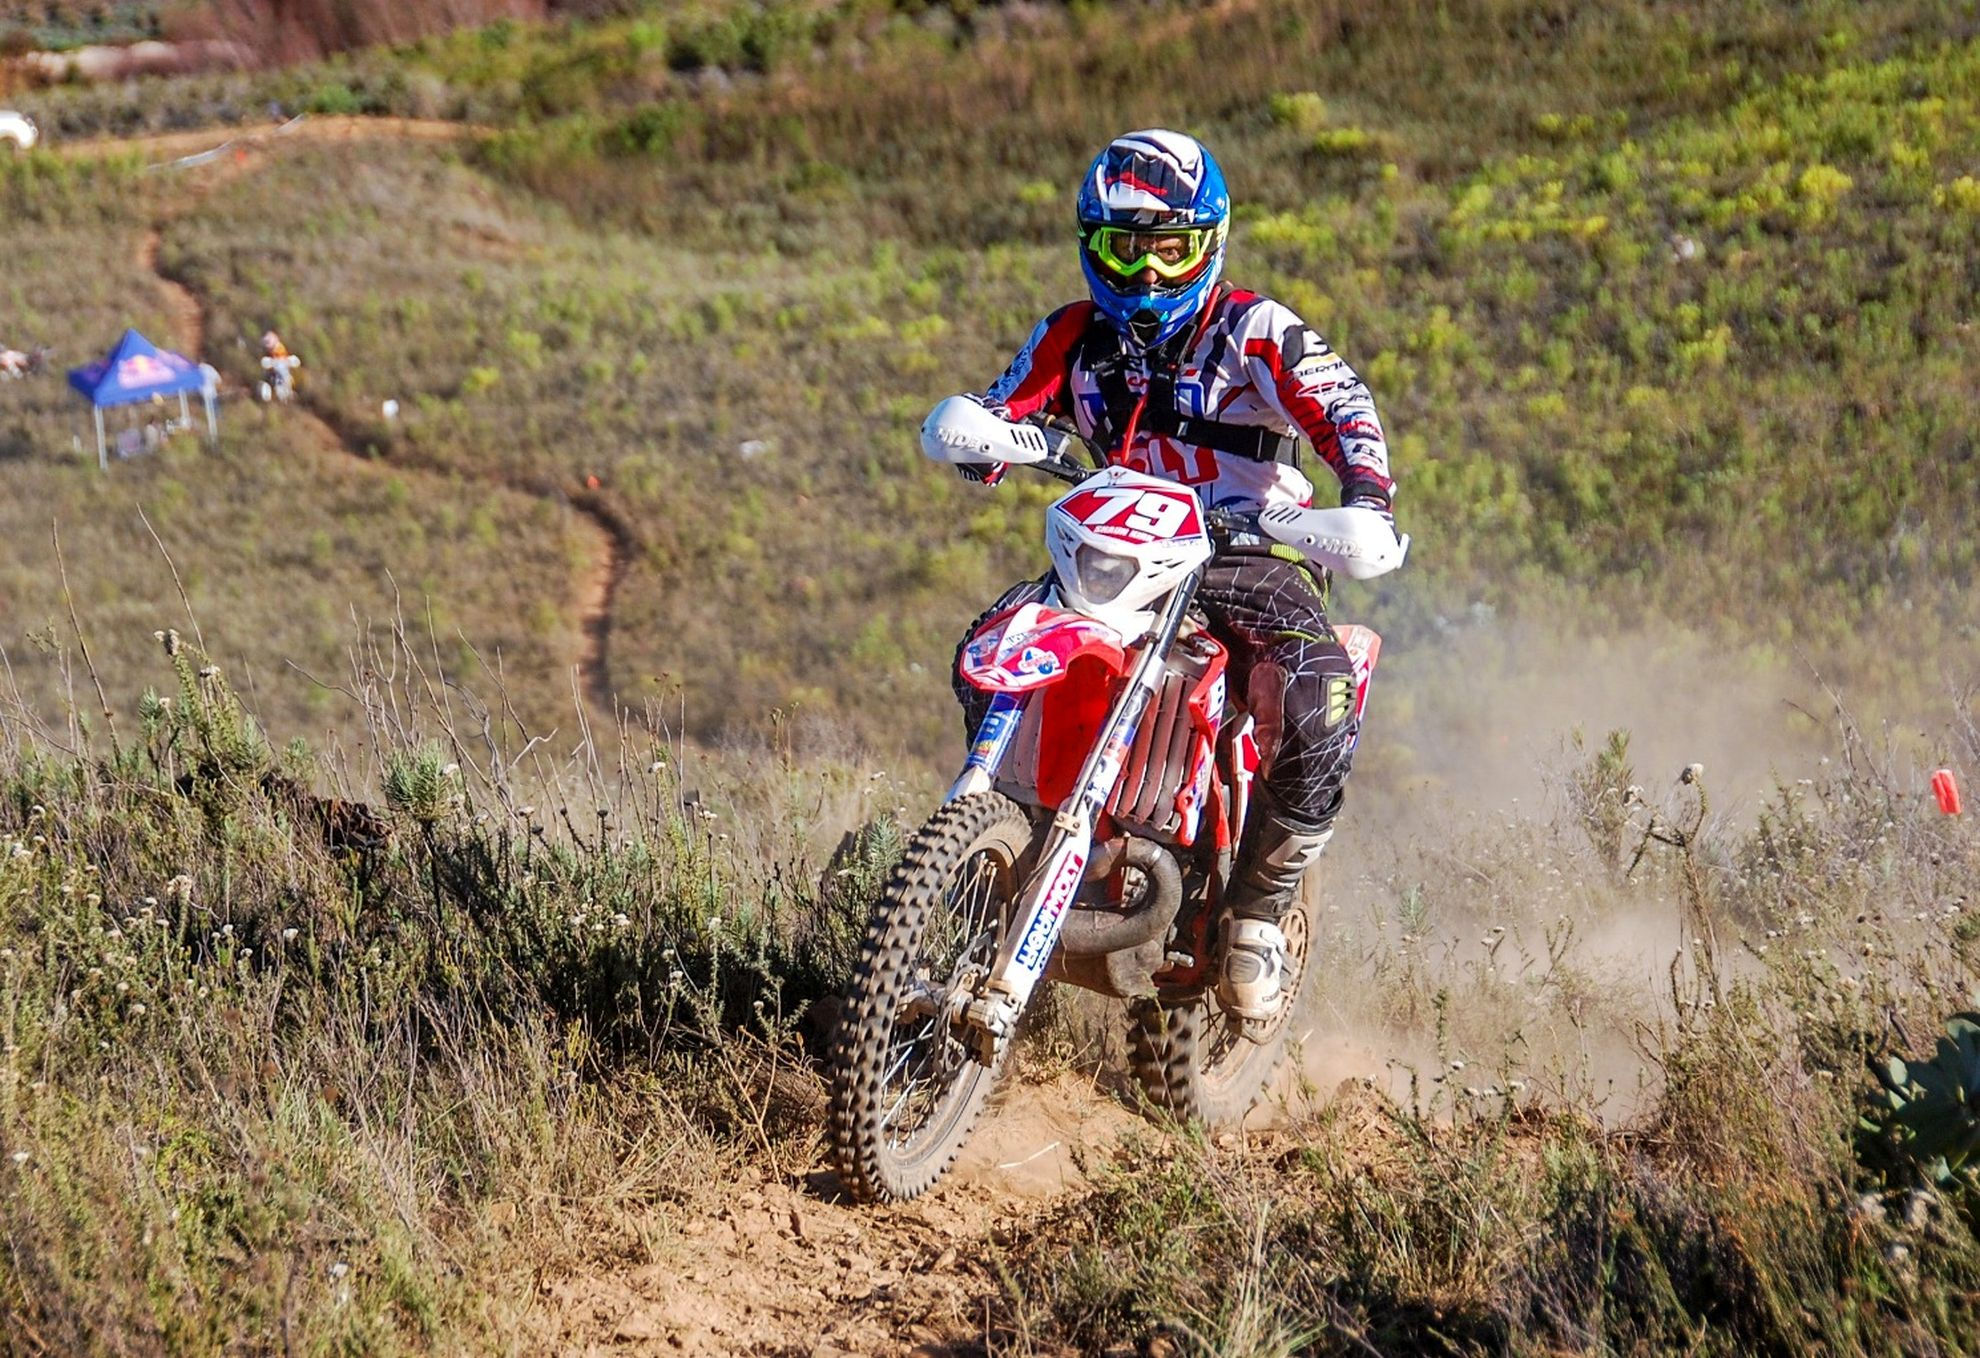 ANYTHING CAN STILL HAPPEN AT PENULTIMATE NATIONAL ENDURO AT ESTCOURT